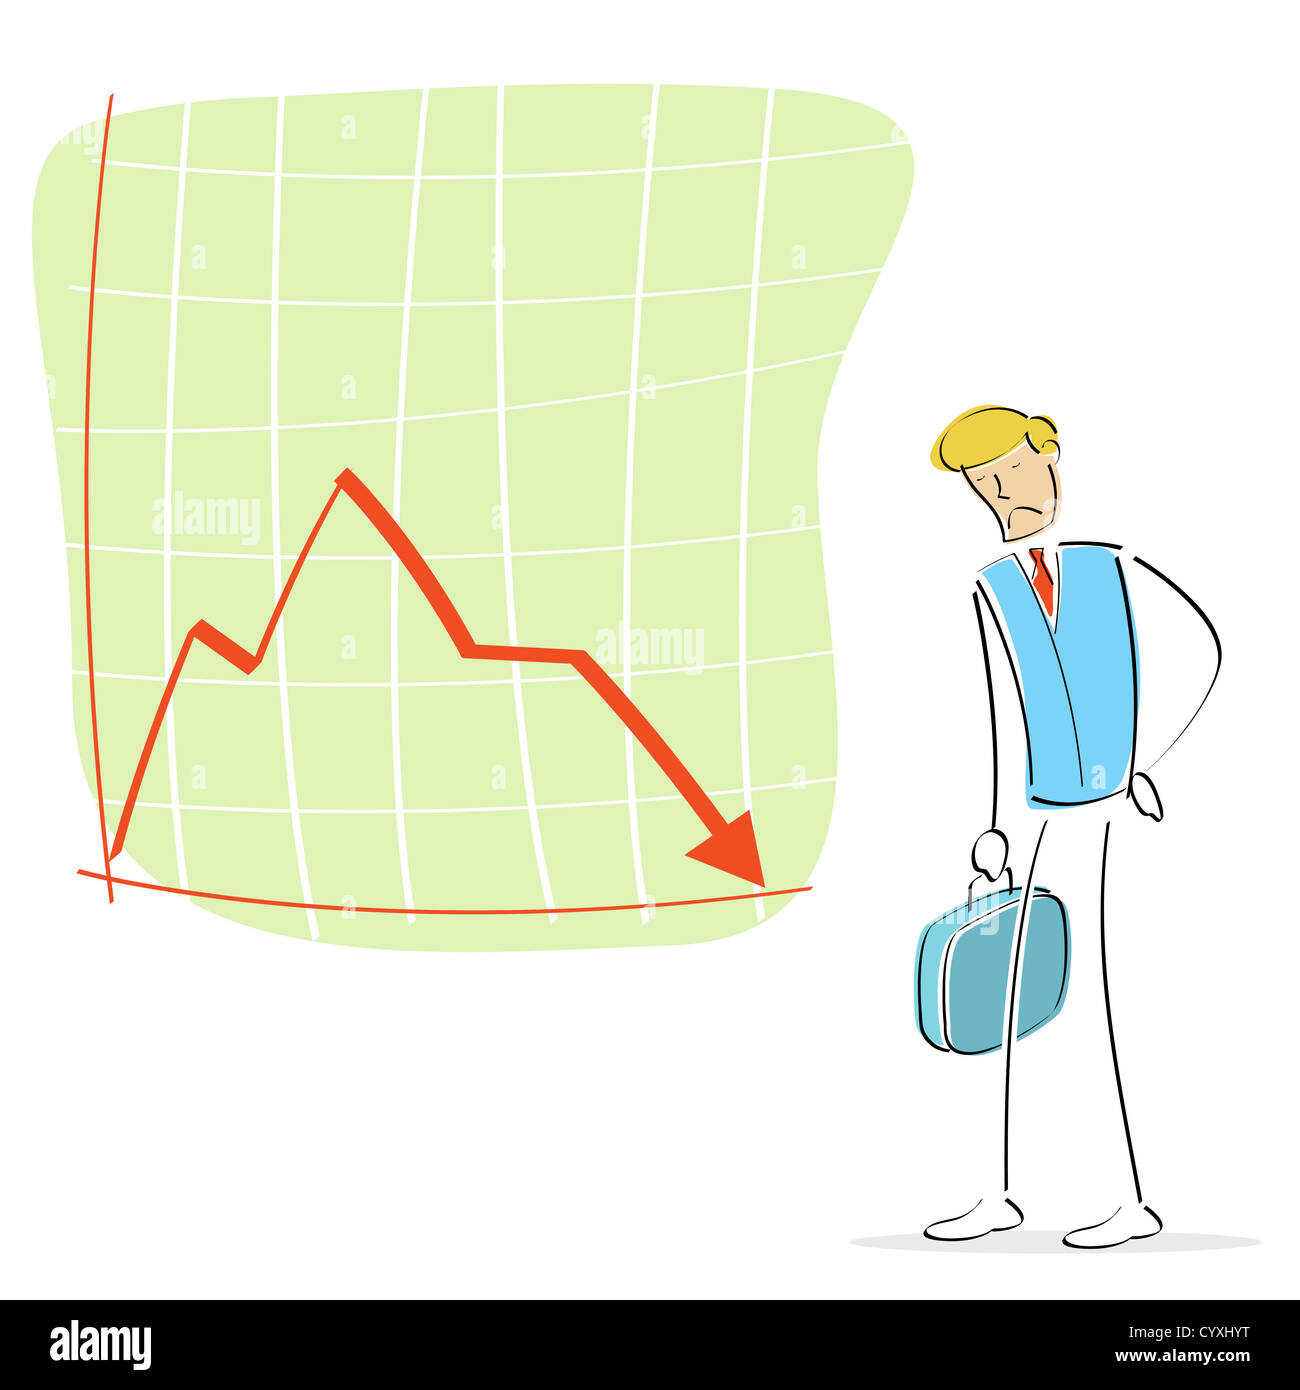 Illustration of an upset man looking at the declining arrow stock illustration of an upset man looking at the declining arrow ccuart Images